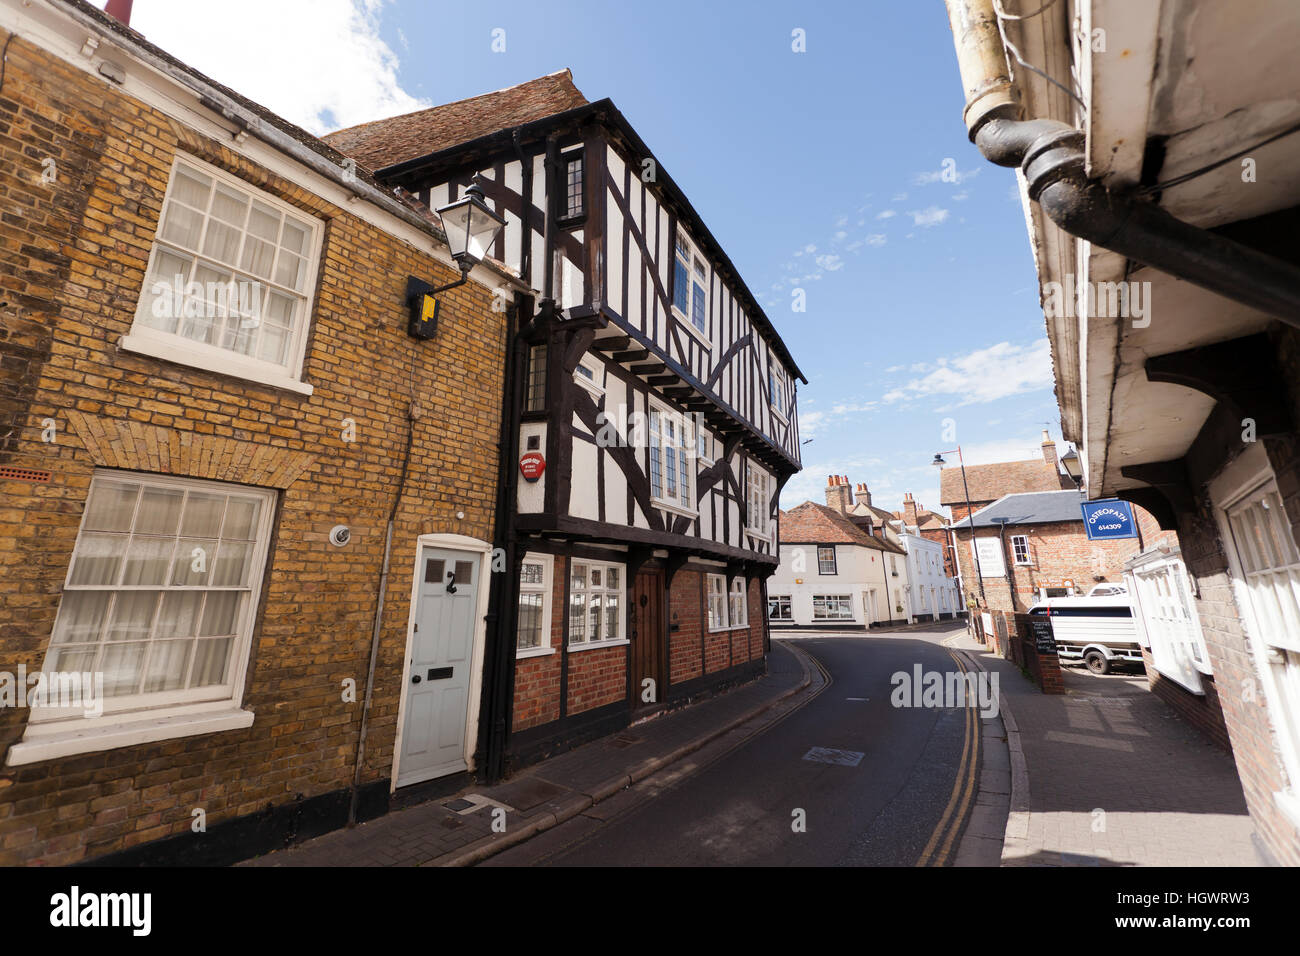 39 and 41 Strand Street Sandwich, Kent formerly known as Pilgrim's House) is a 14th to 16th-century timber framed Stock Photo